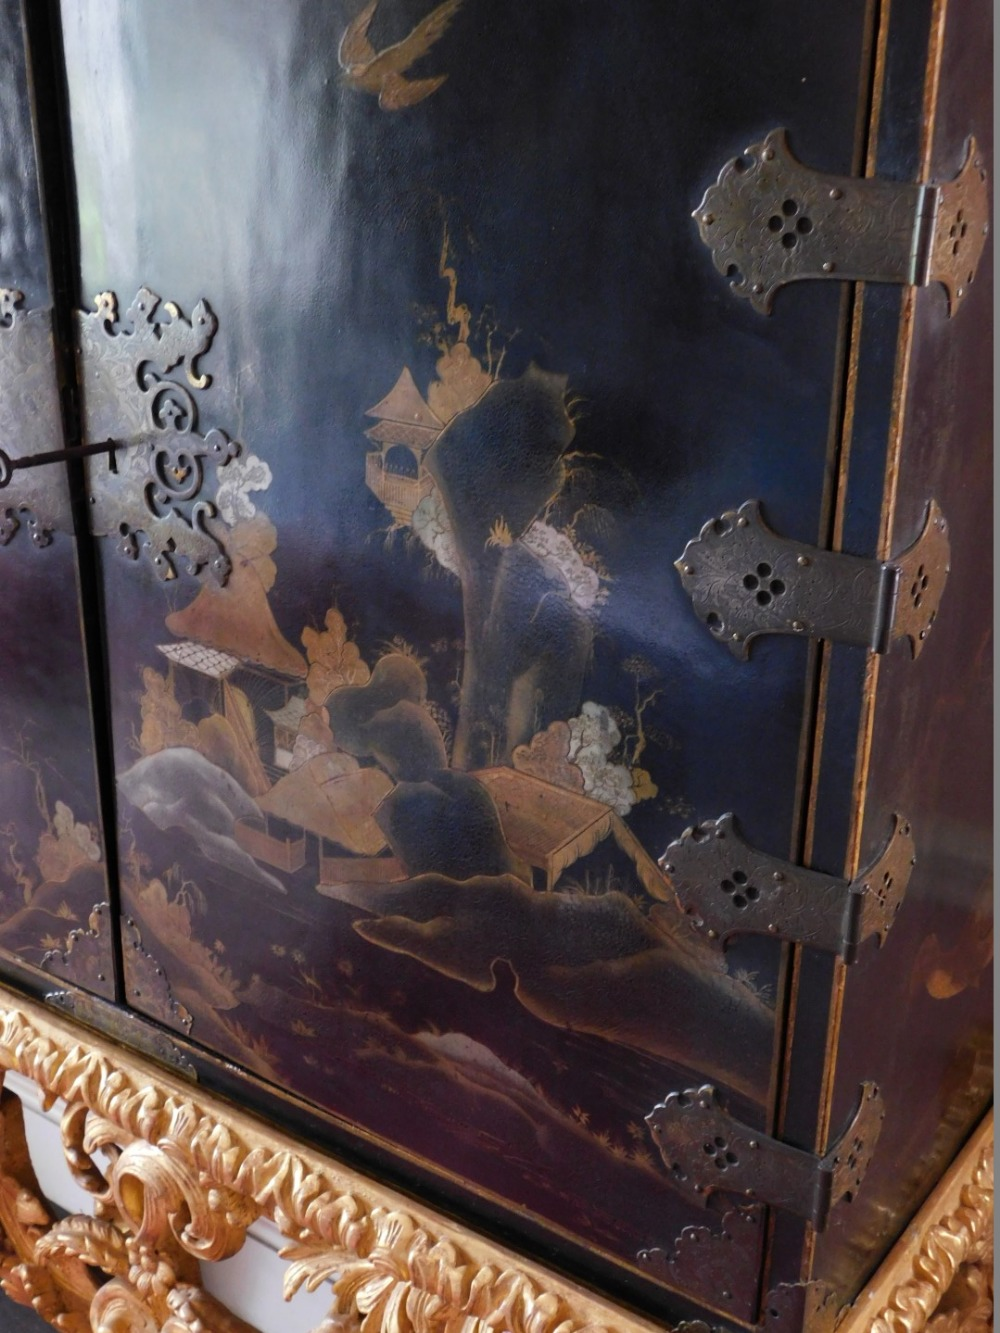 A late 17th/early 18thC Japanned cabinet, decorated in gilt and silver with flowers, buildings, etc. - Image 3 of 8